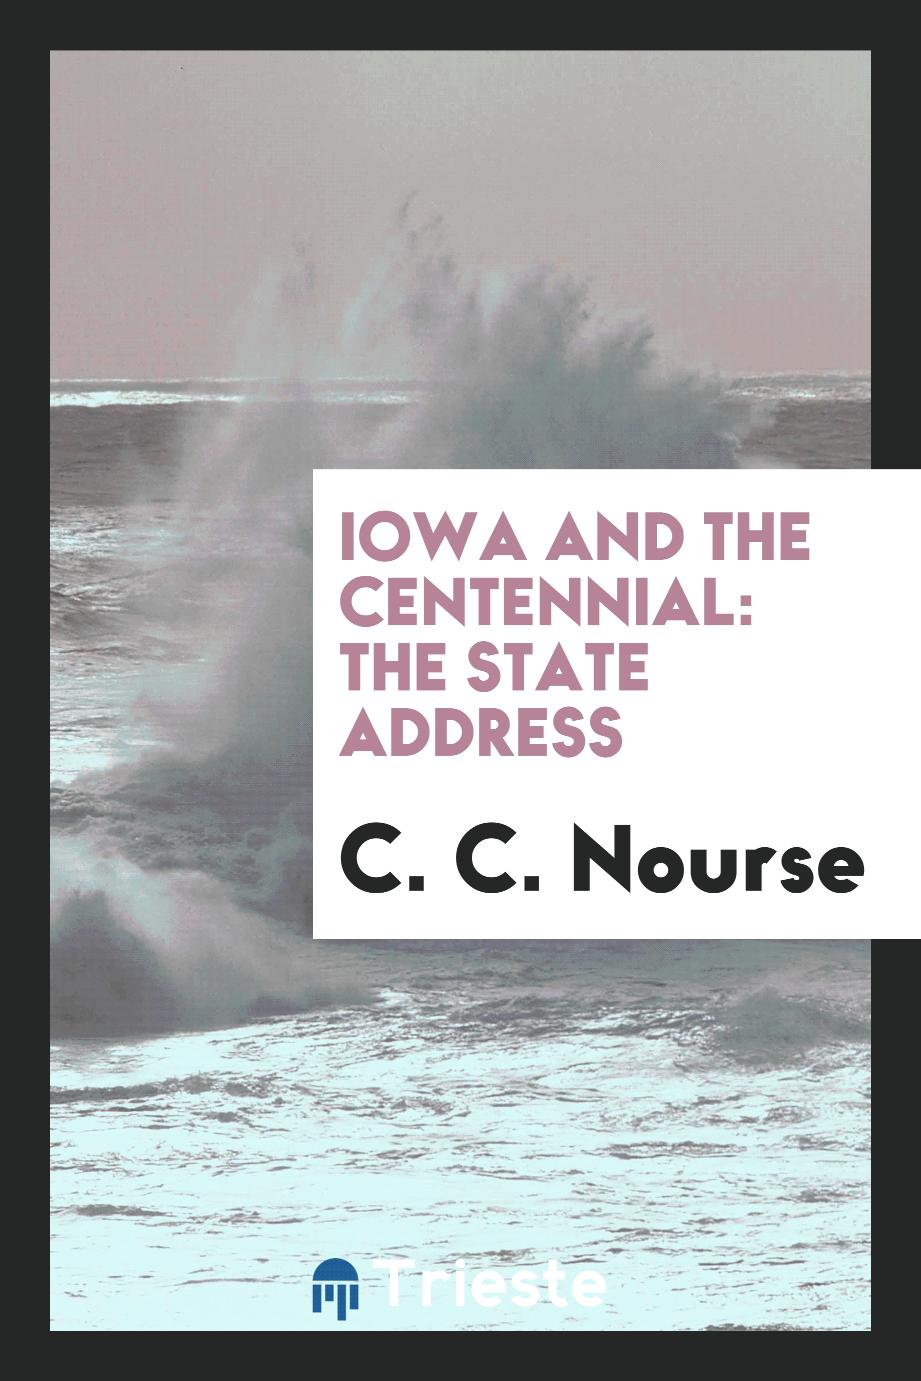 Iowa and the Centennial: The State Address